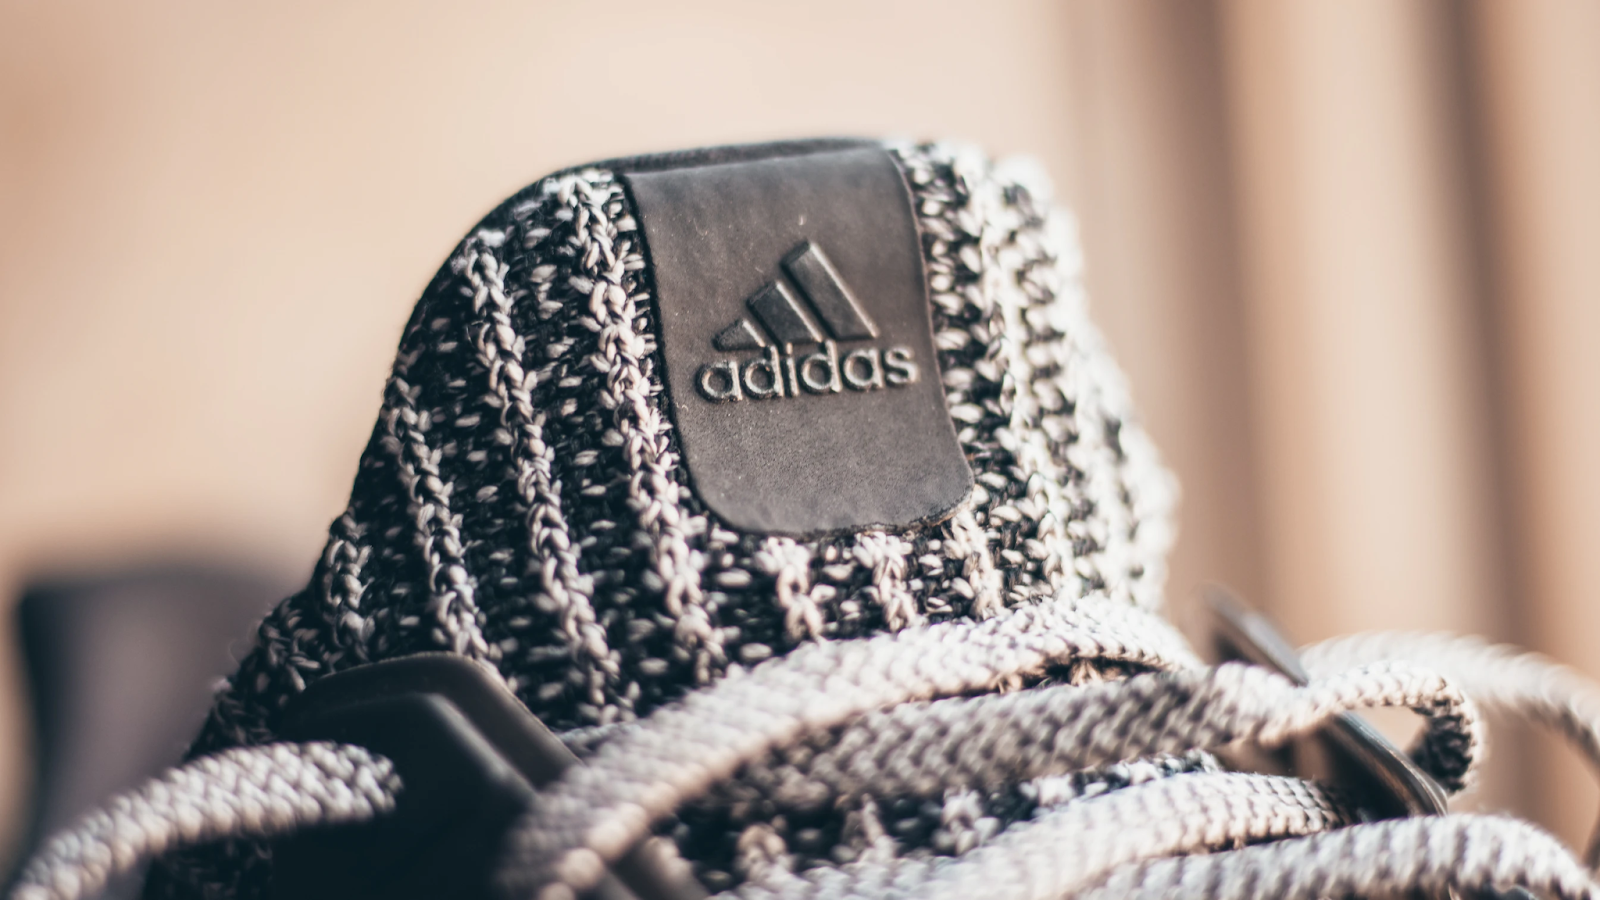 A close up photo of Adidas sneakers in a grey color